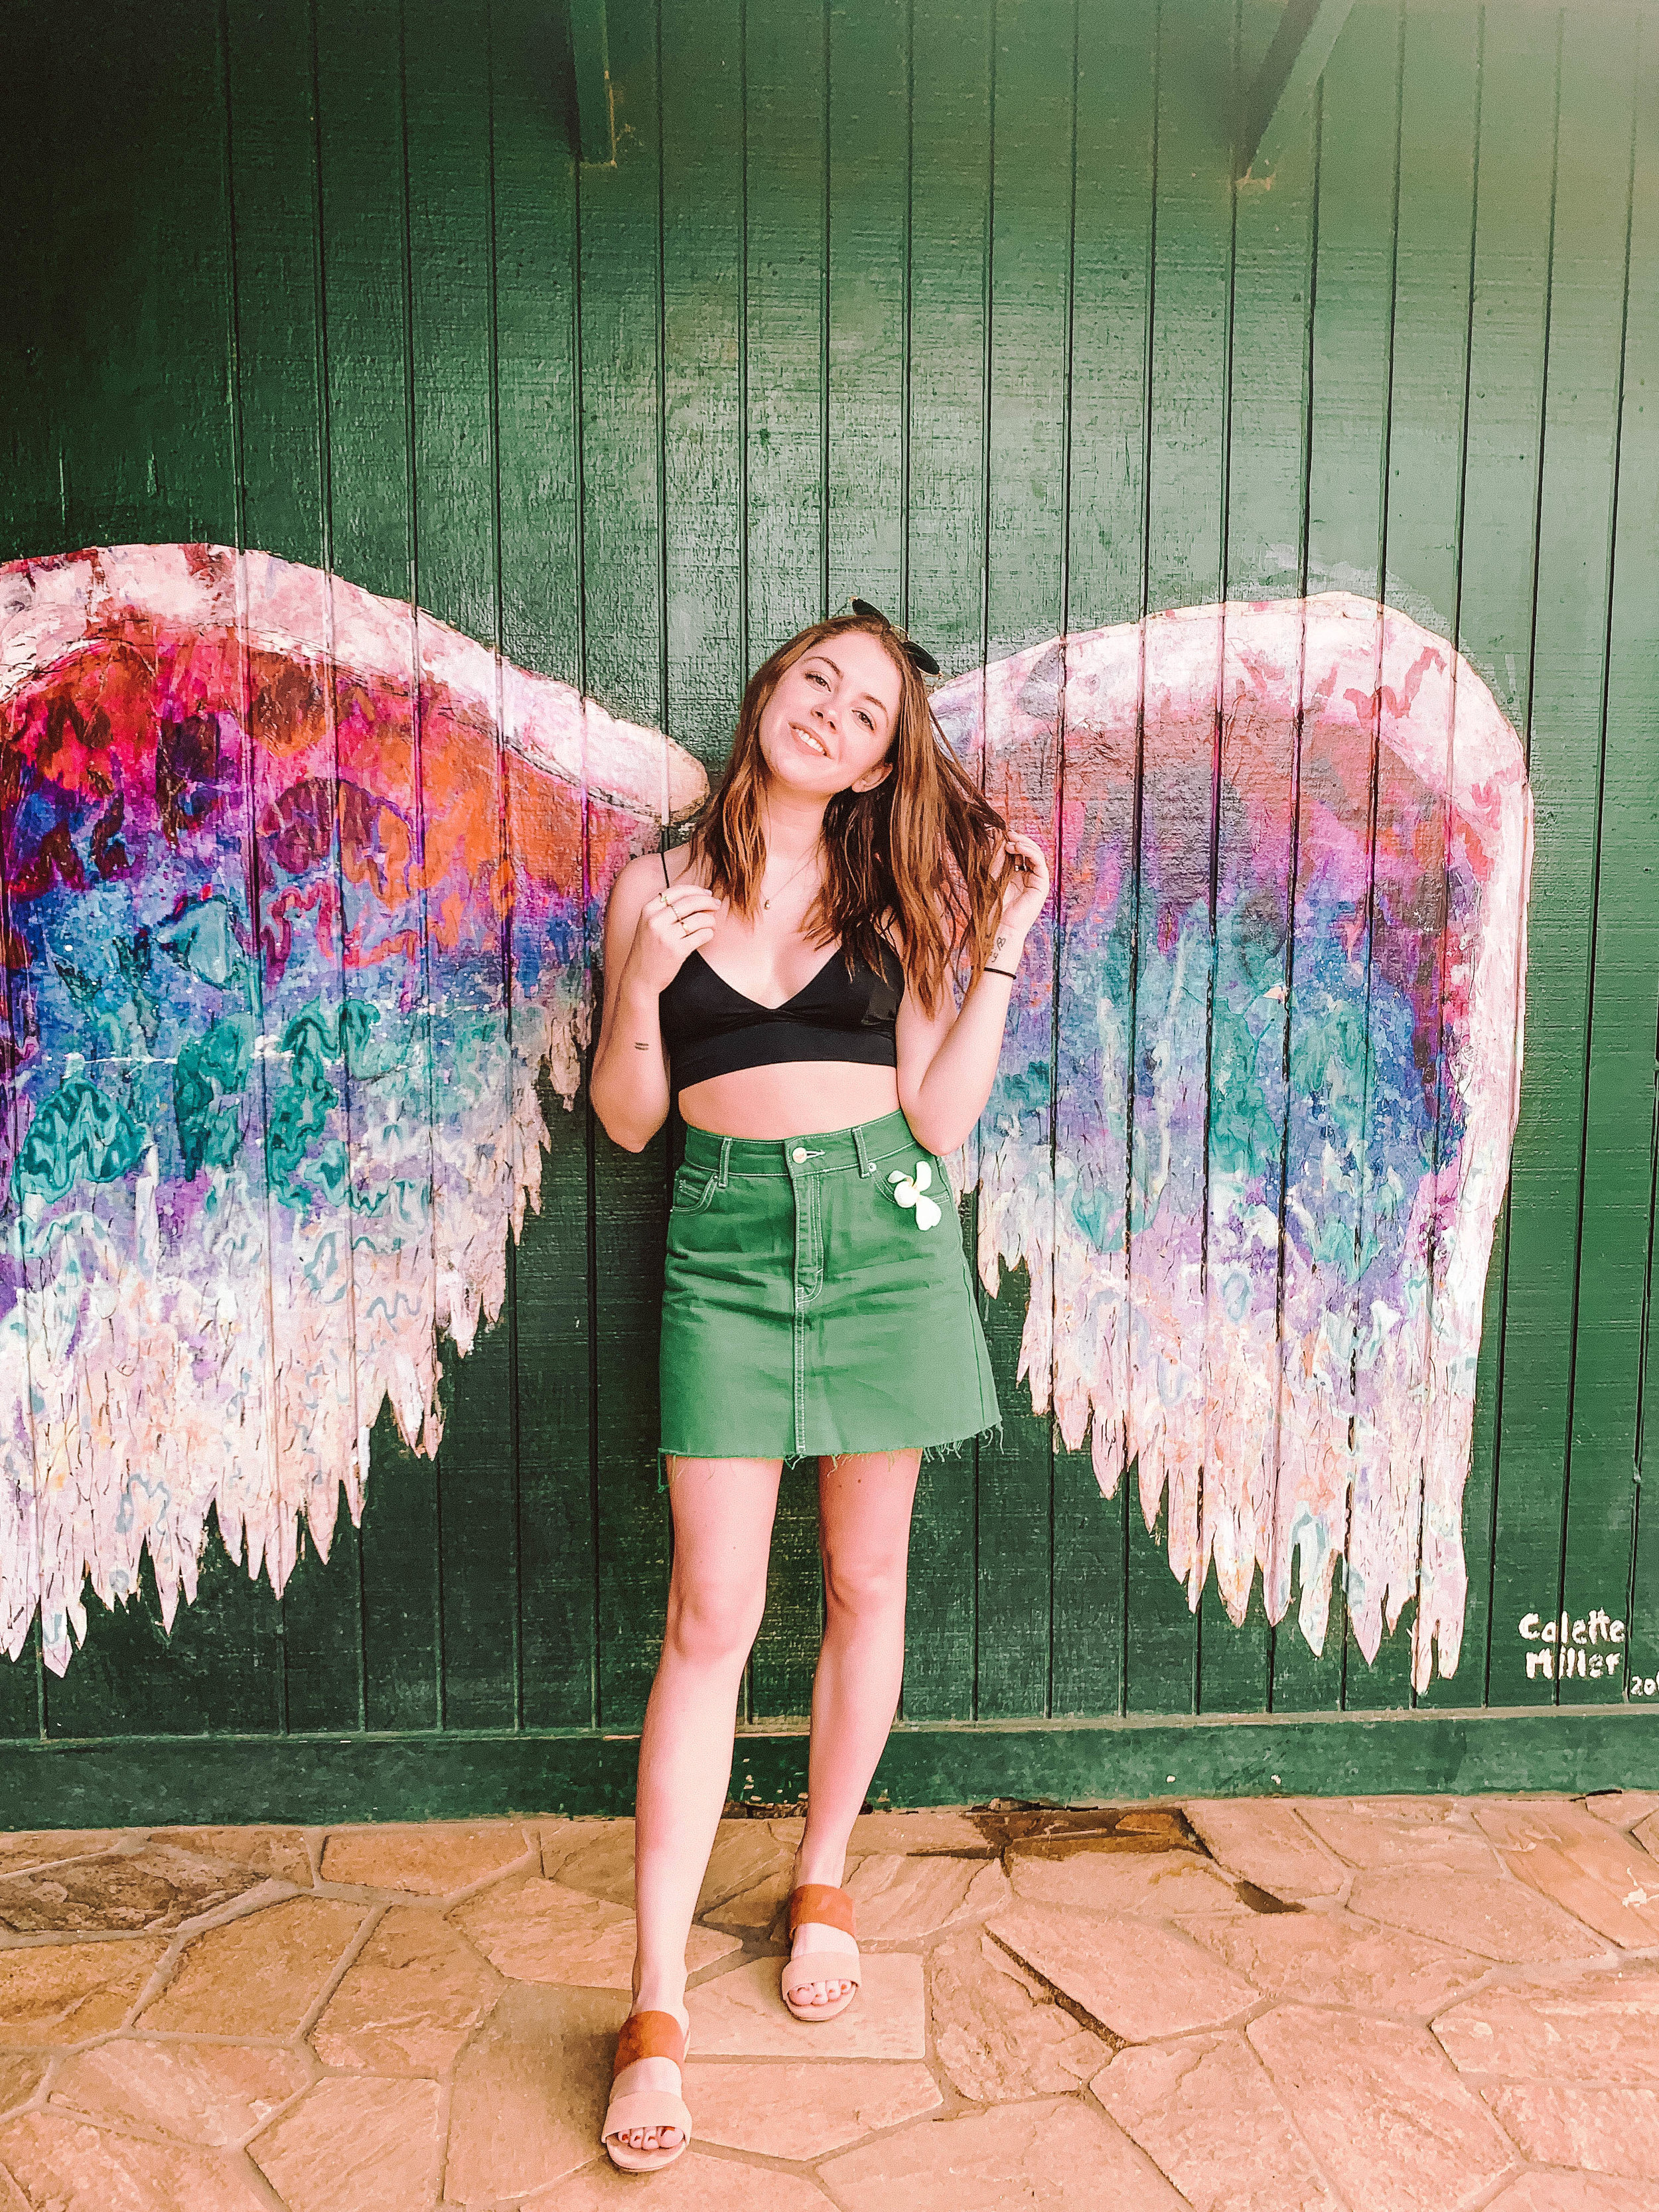 Colette Miller Wings - These are a Hawaii classic and you've probably seen every influencer you follow take photos here while in Hawaii. They're located right on the outskirts of Haleiwa, so make sure to stop to snap a quick photo while you're there!